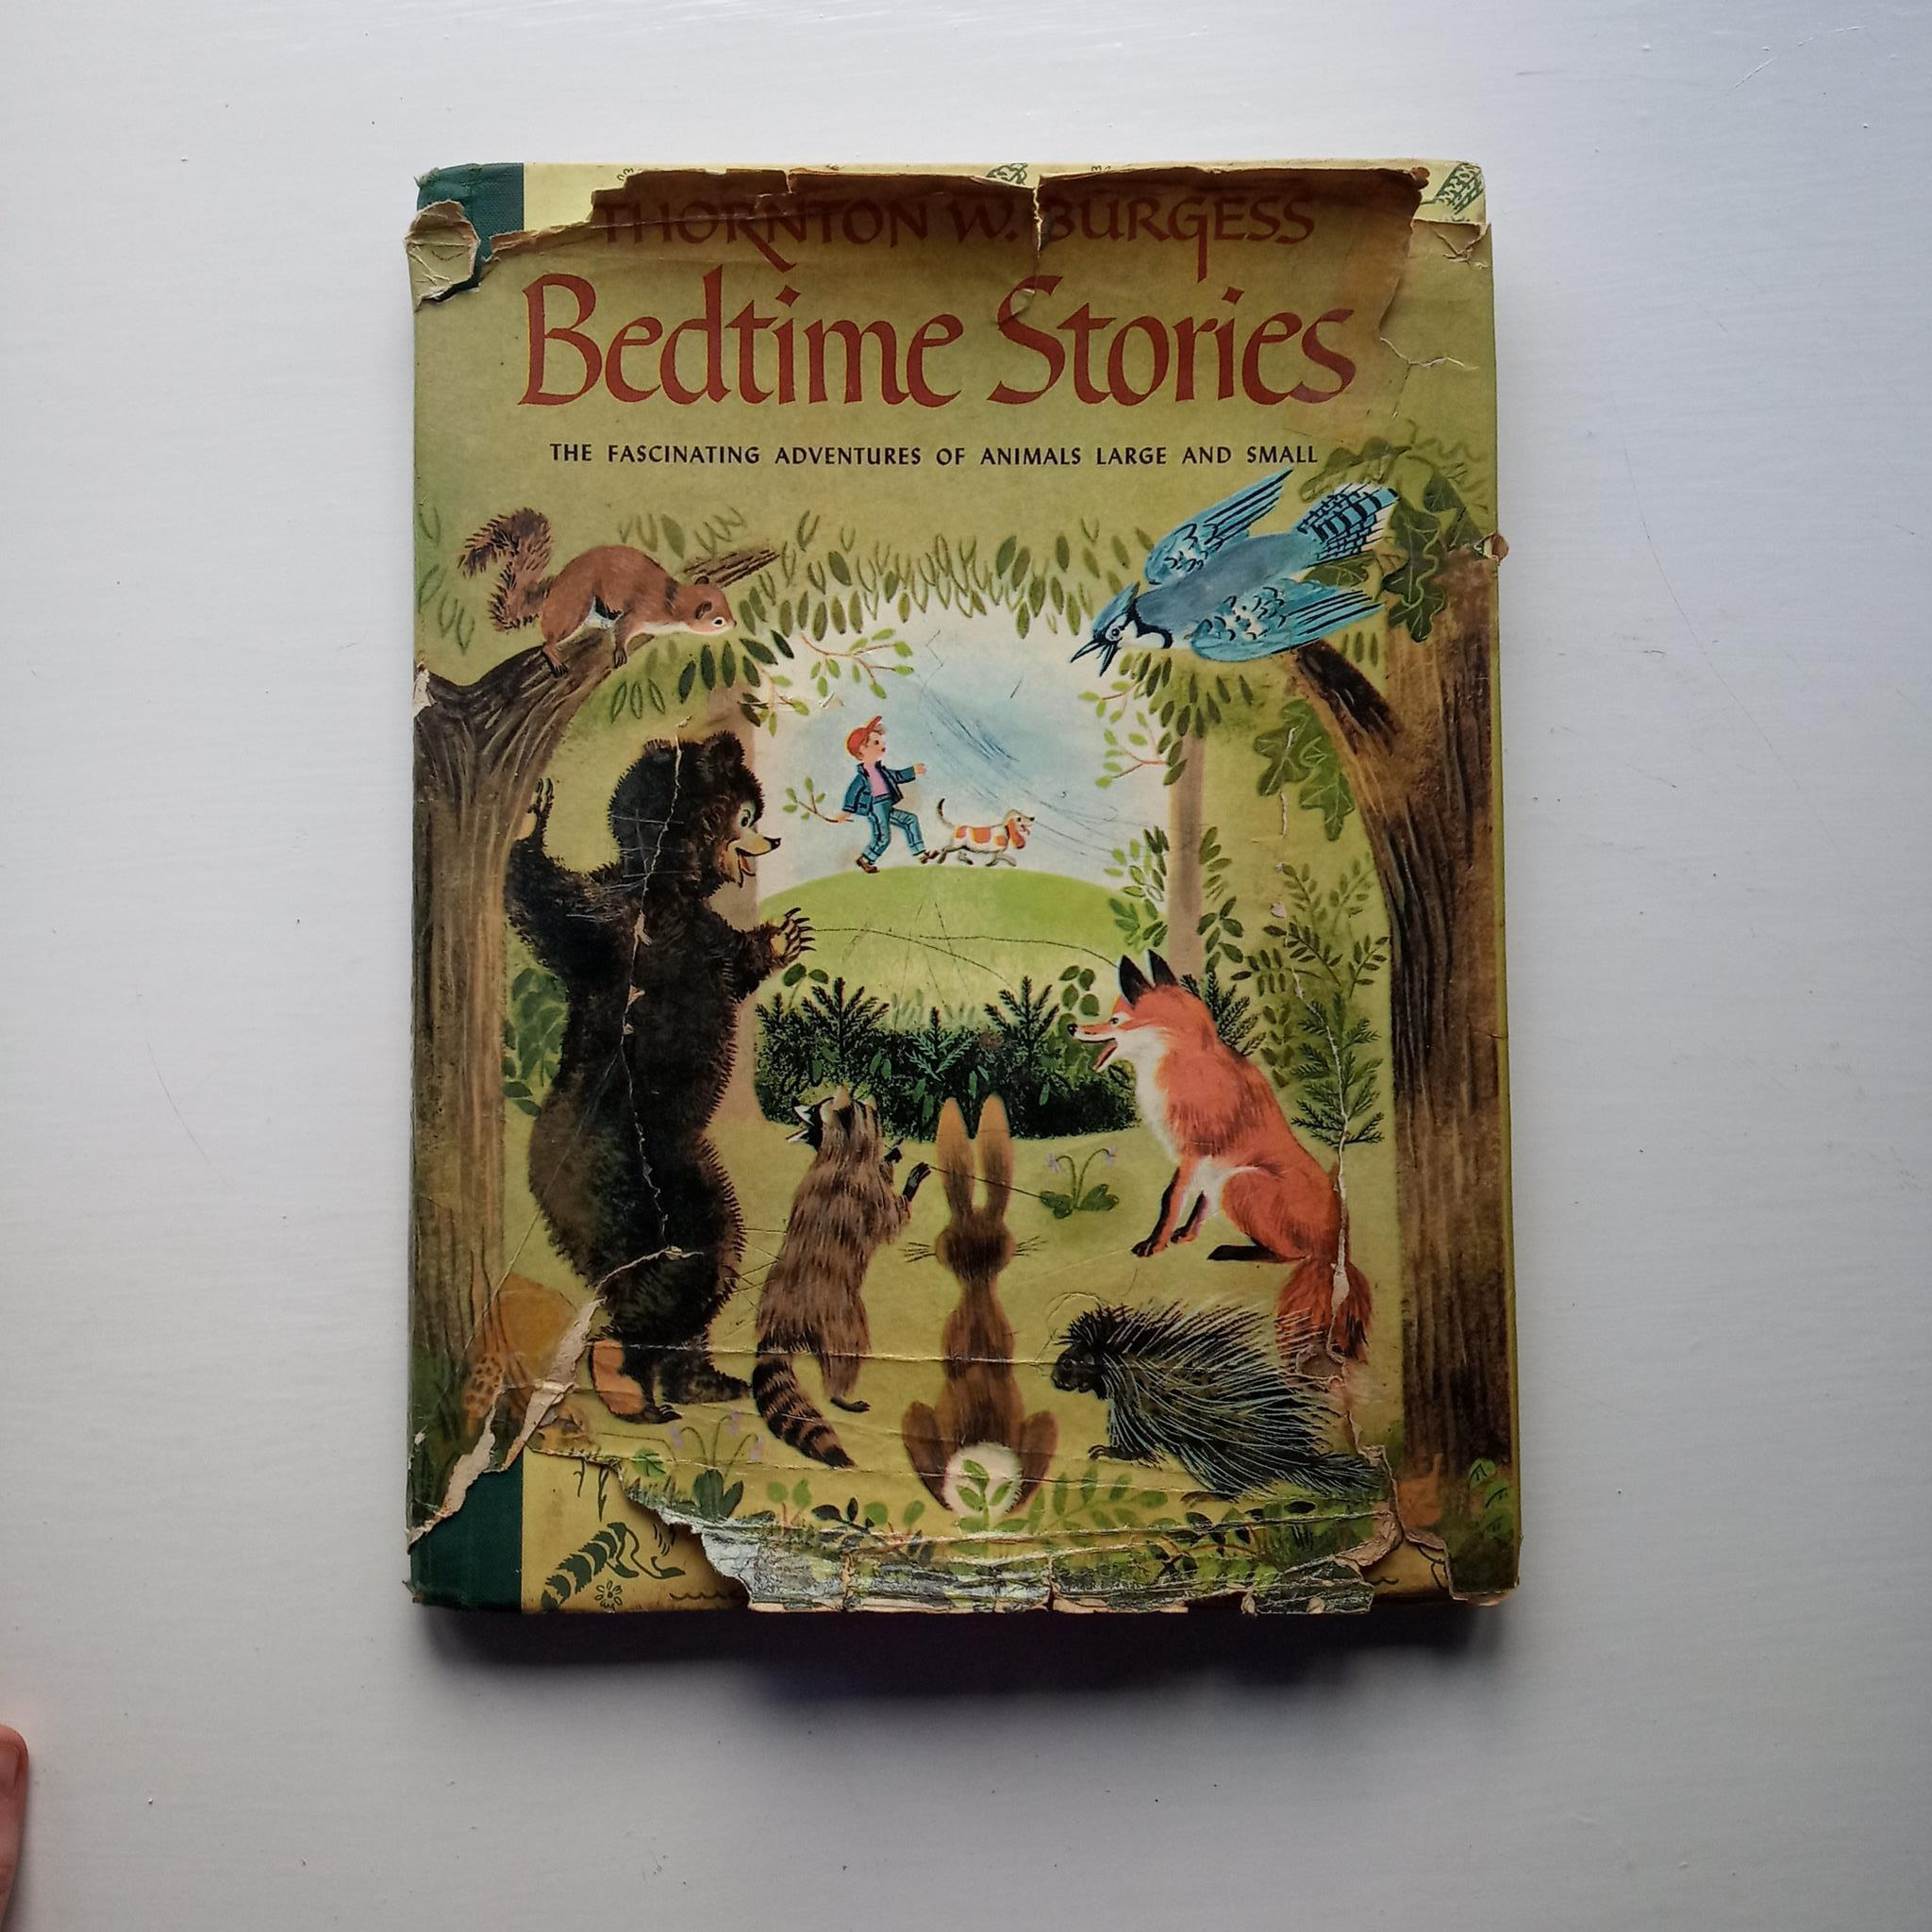 Bedtime Stories by Thornton W. Burgess